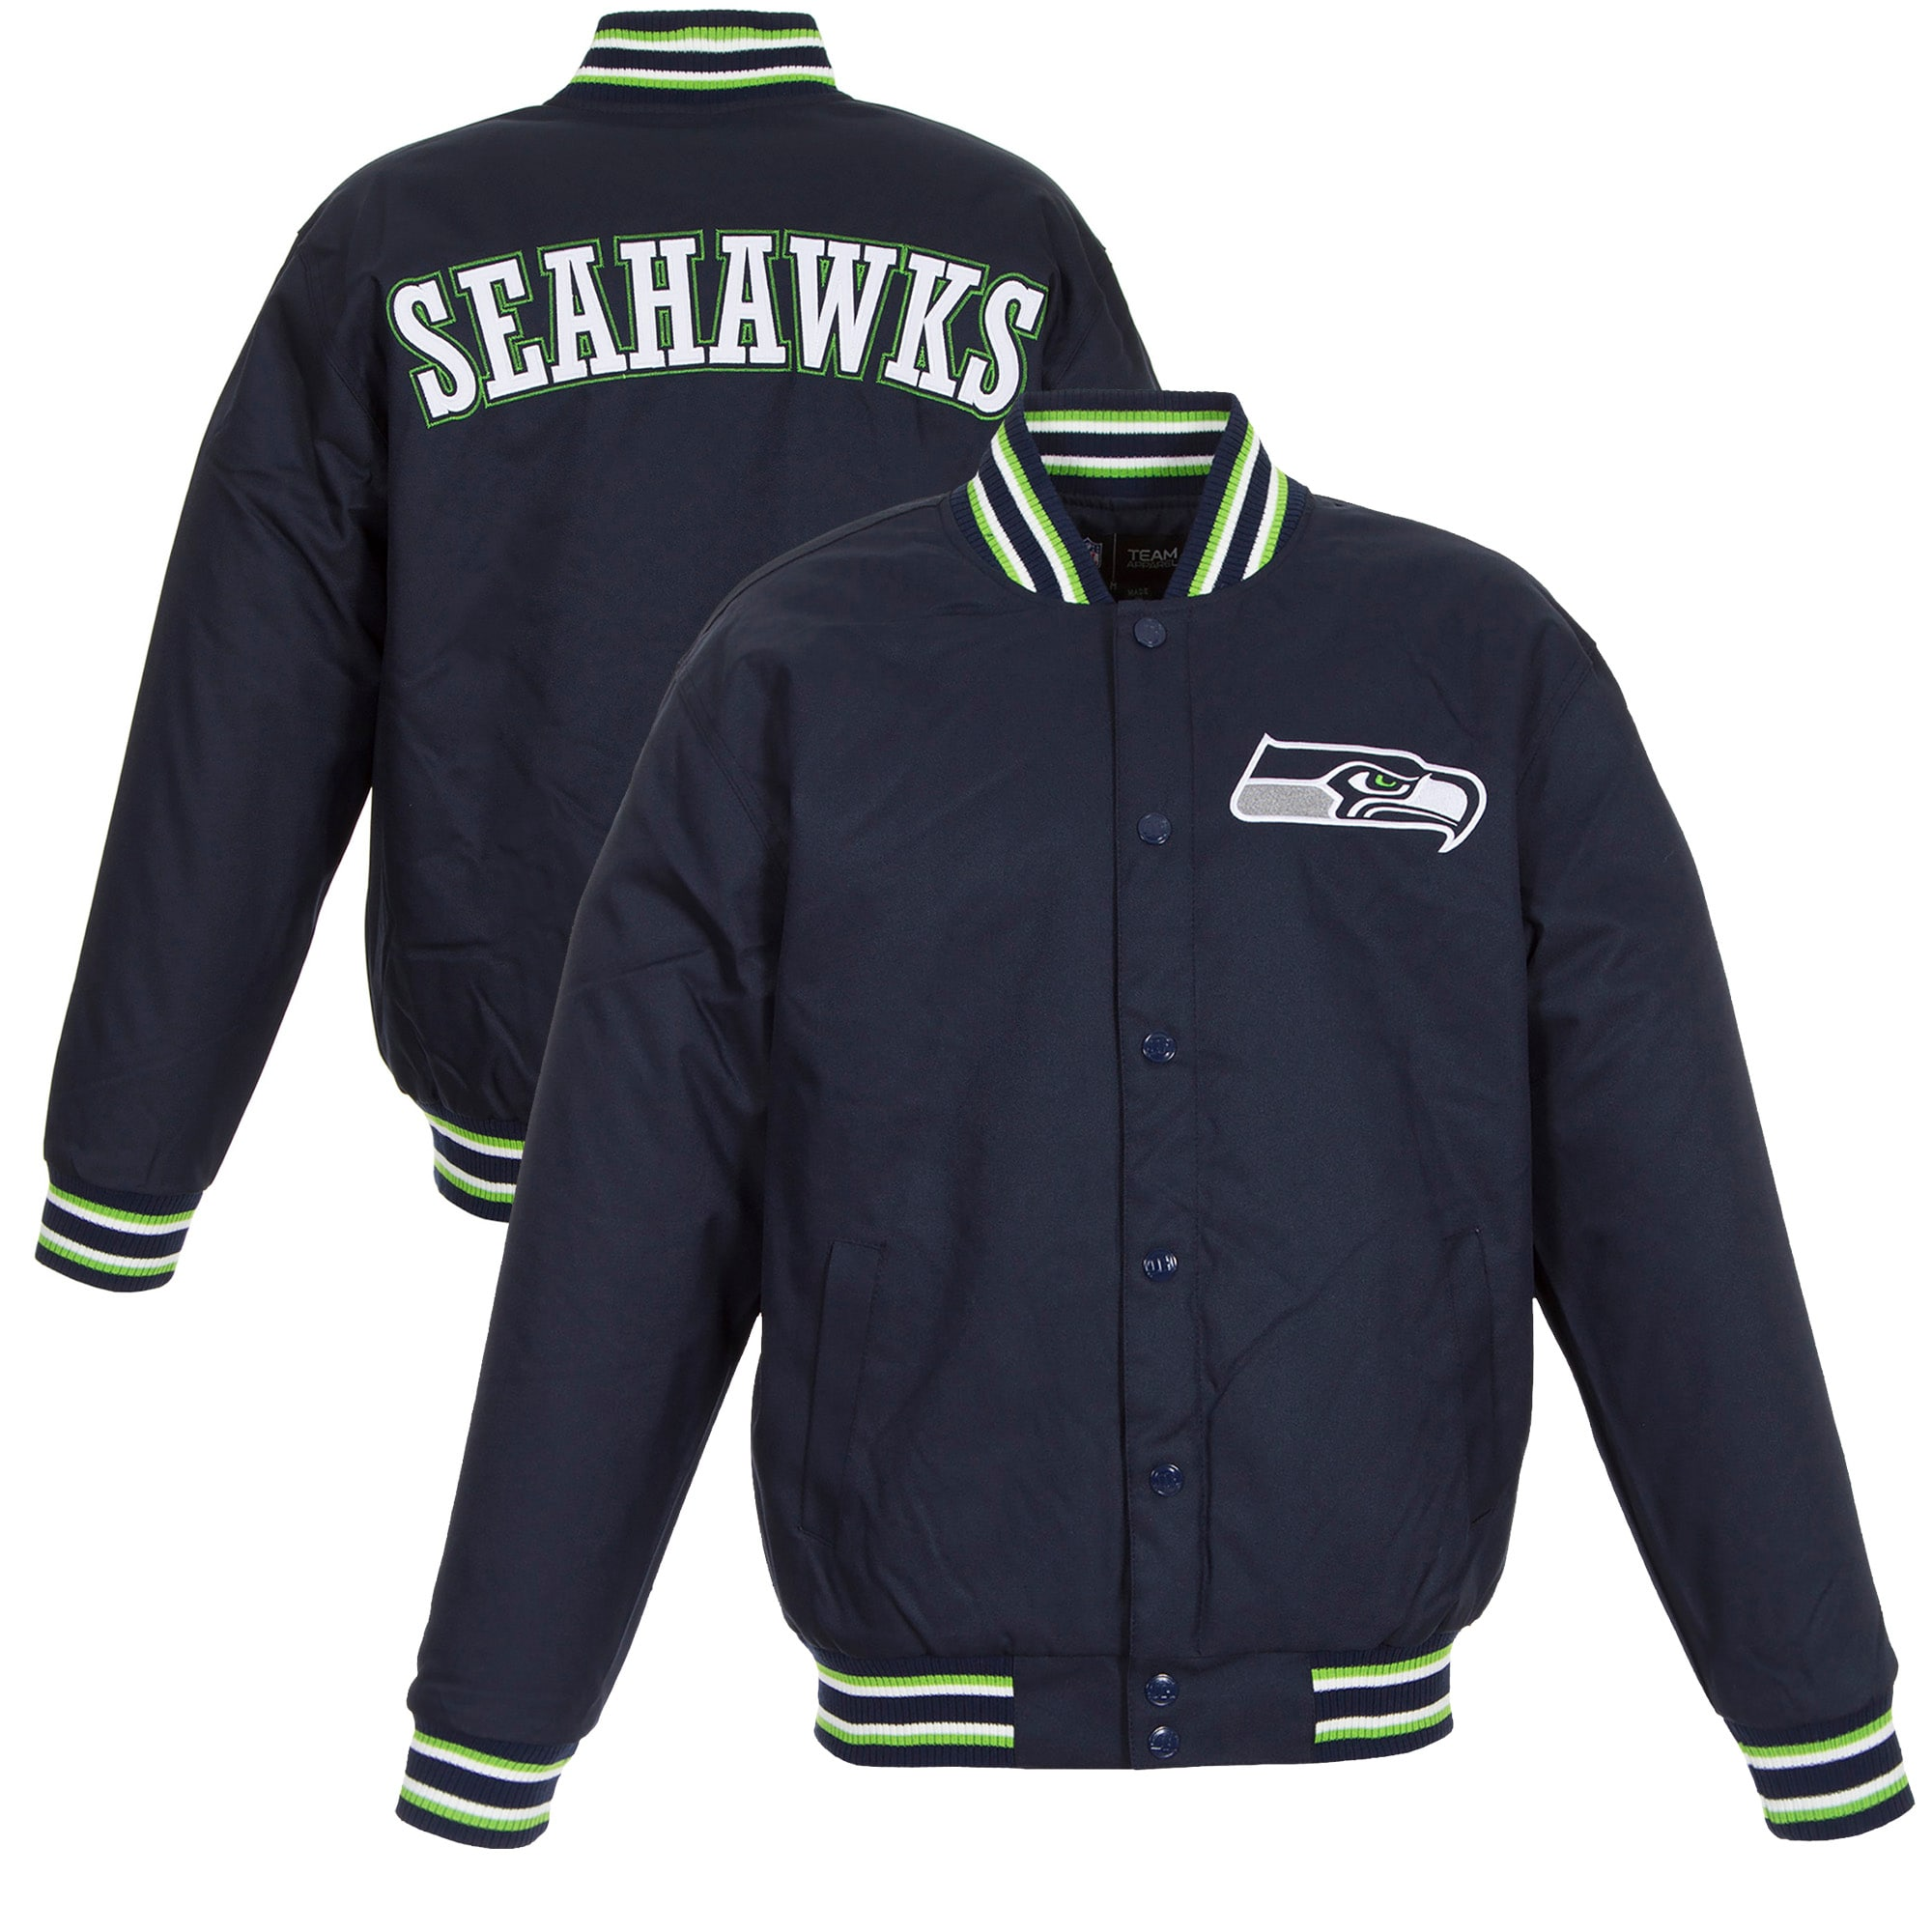 Seattle Seahawks JH Design Poly Twill Varsity Jacket - College Navy